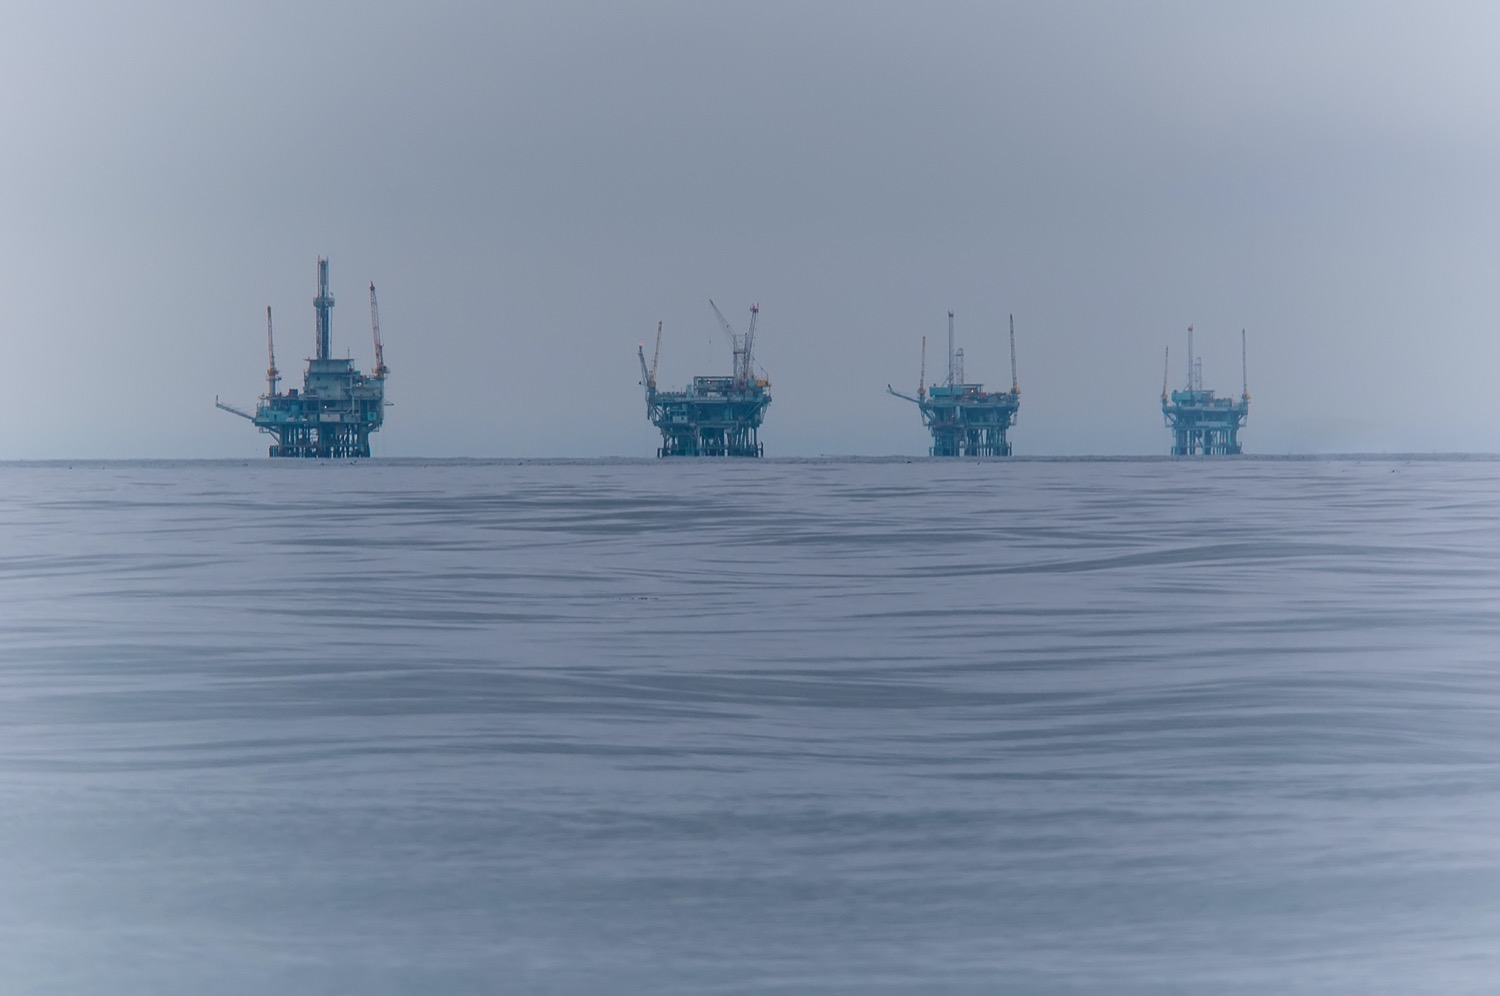 four oil rig platforms seen out in the misty distance on the horizon of the ocean